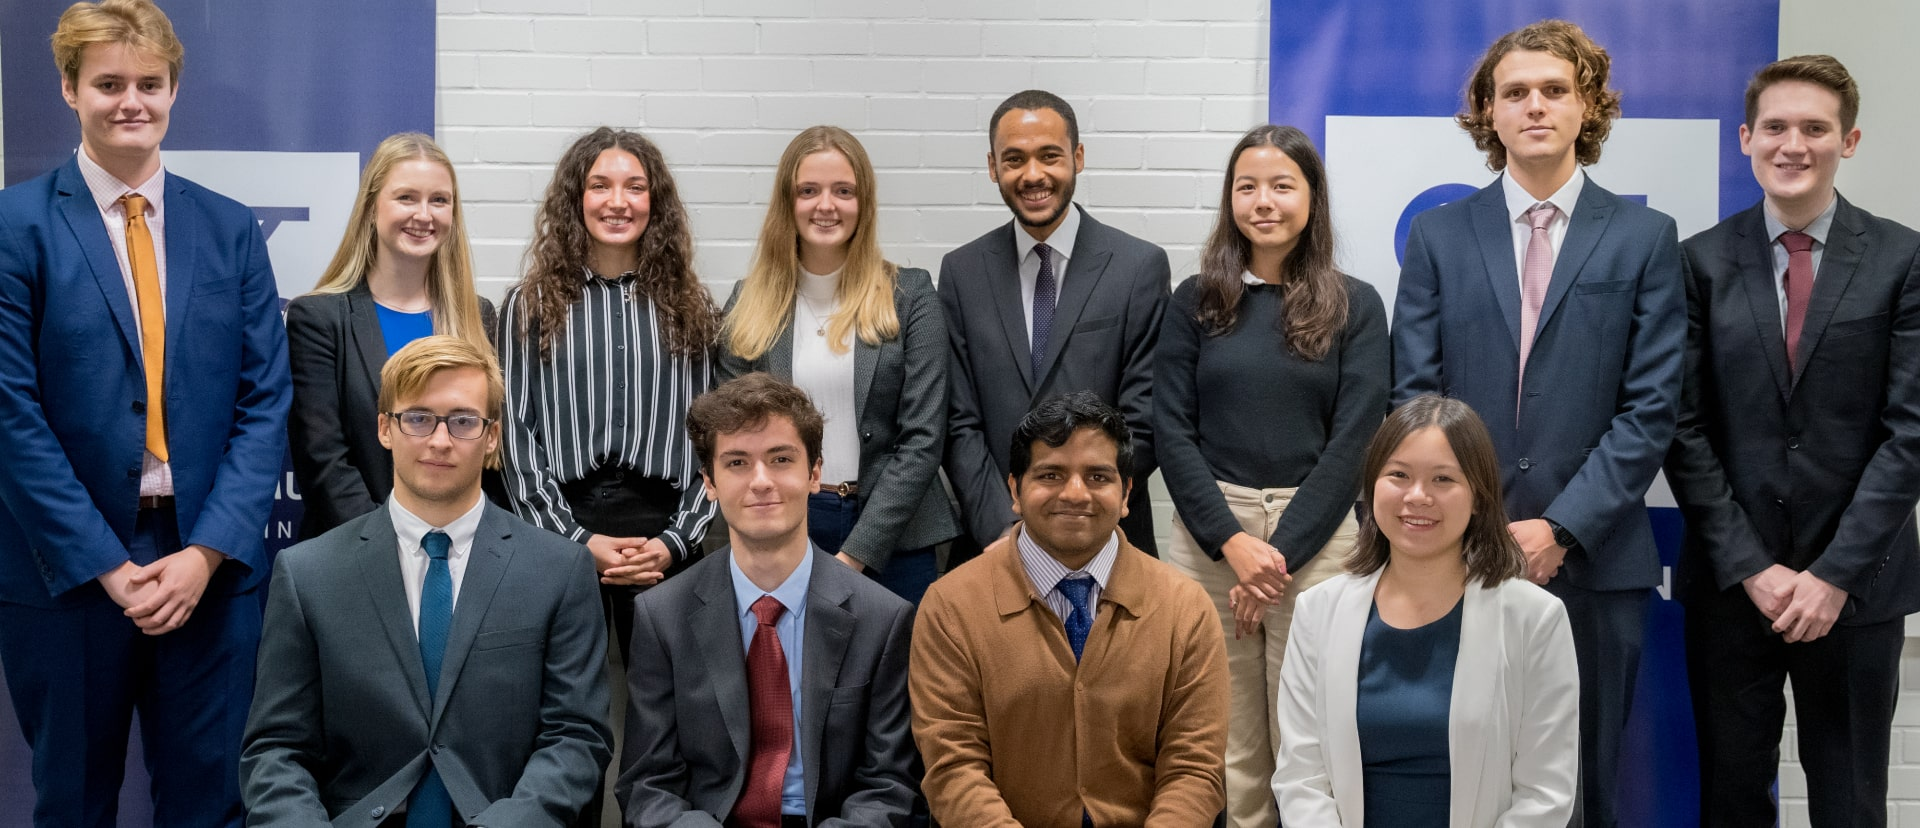 An image of the YCC Committee